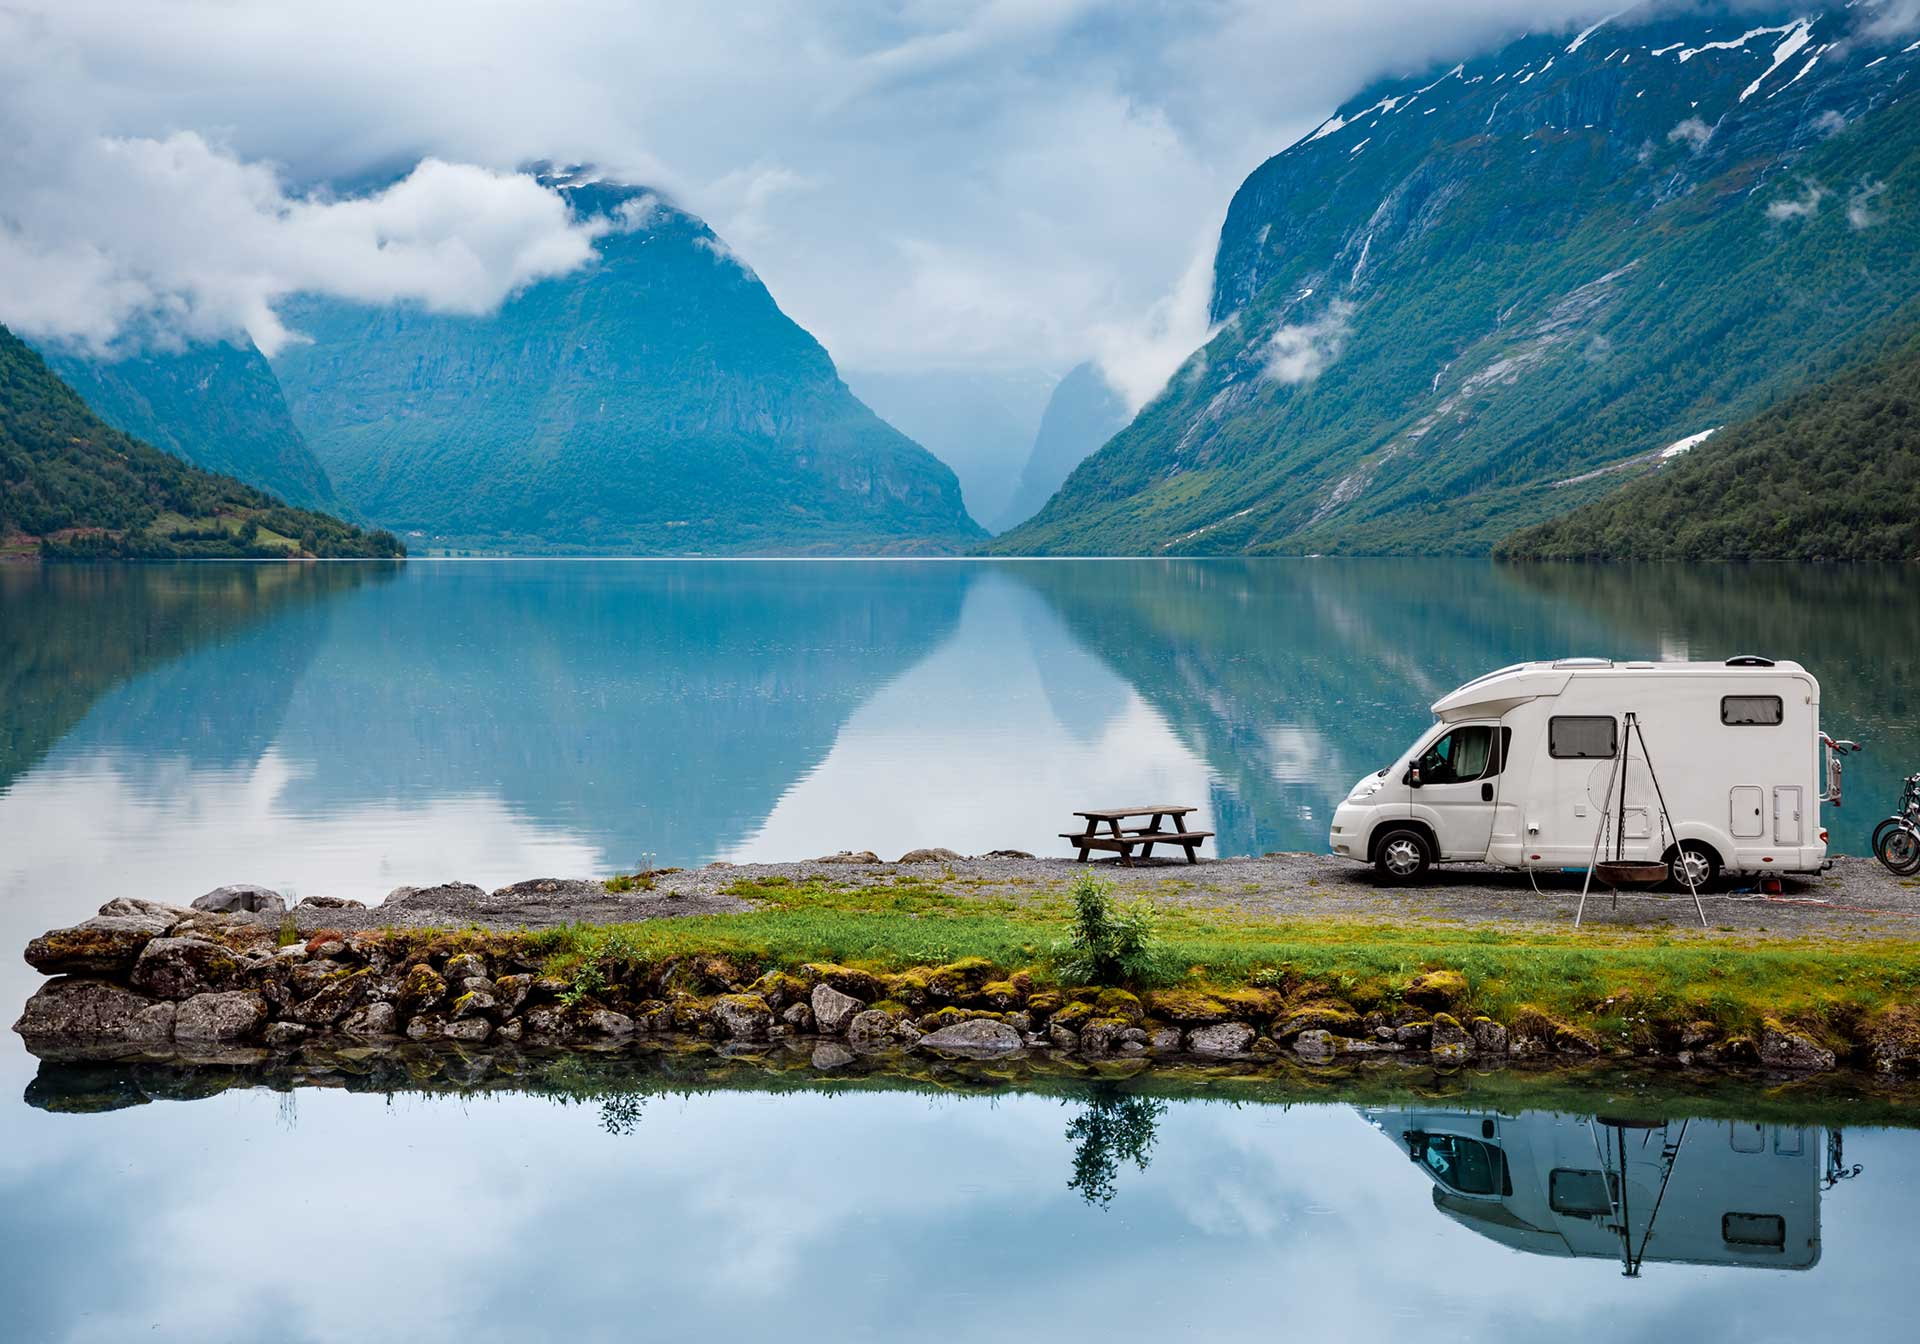 Personal caravan by a lake with mountains